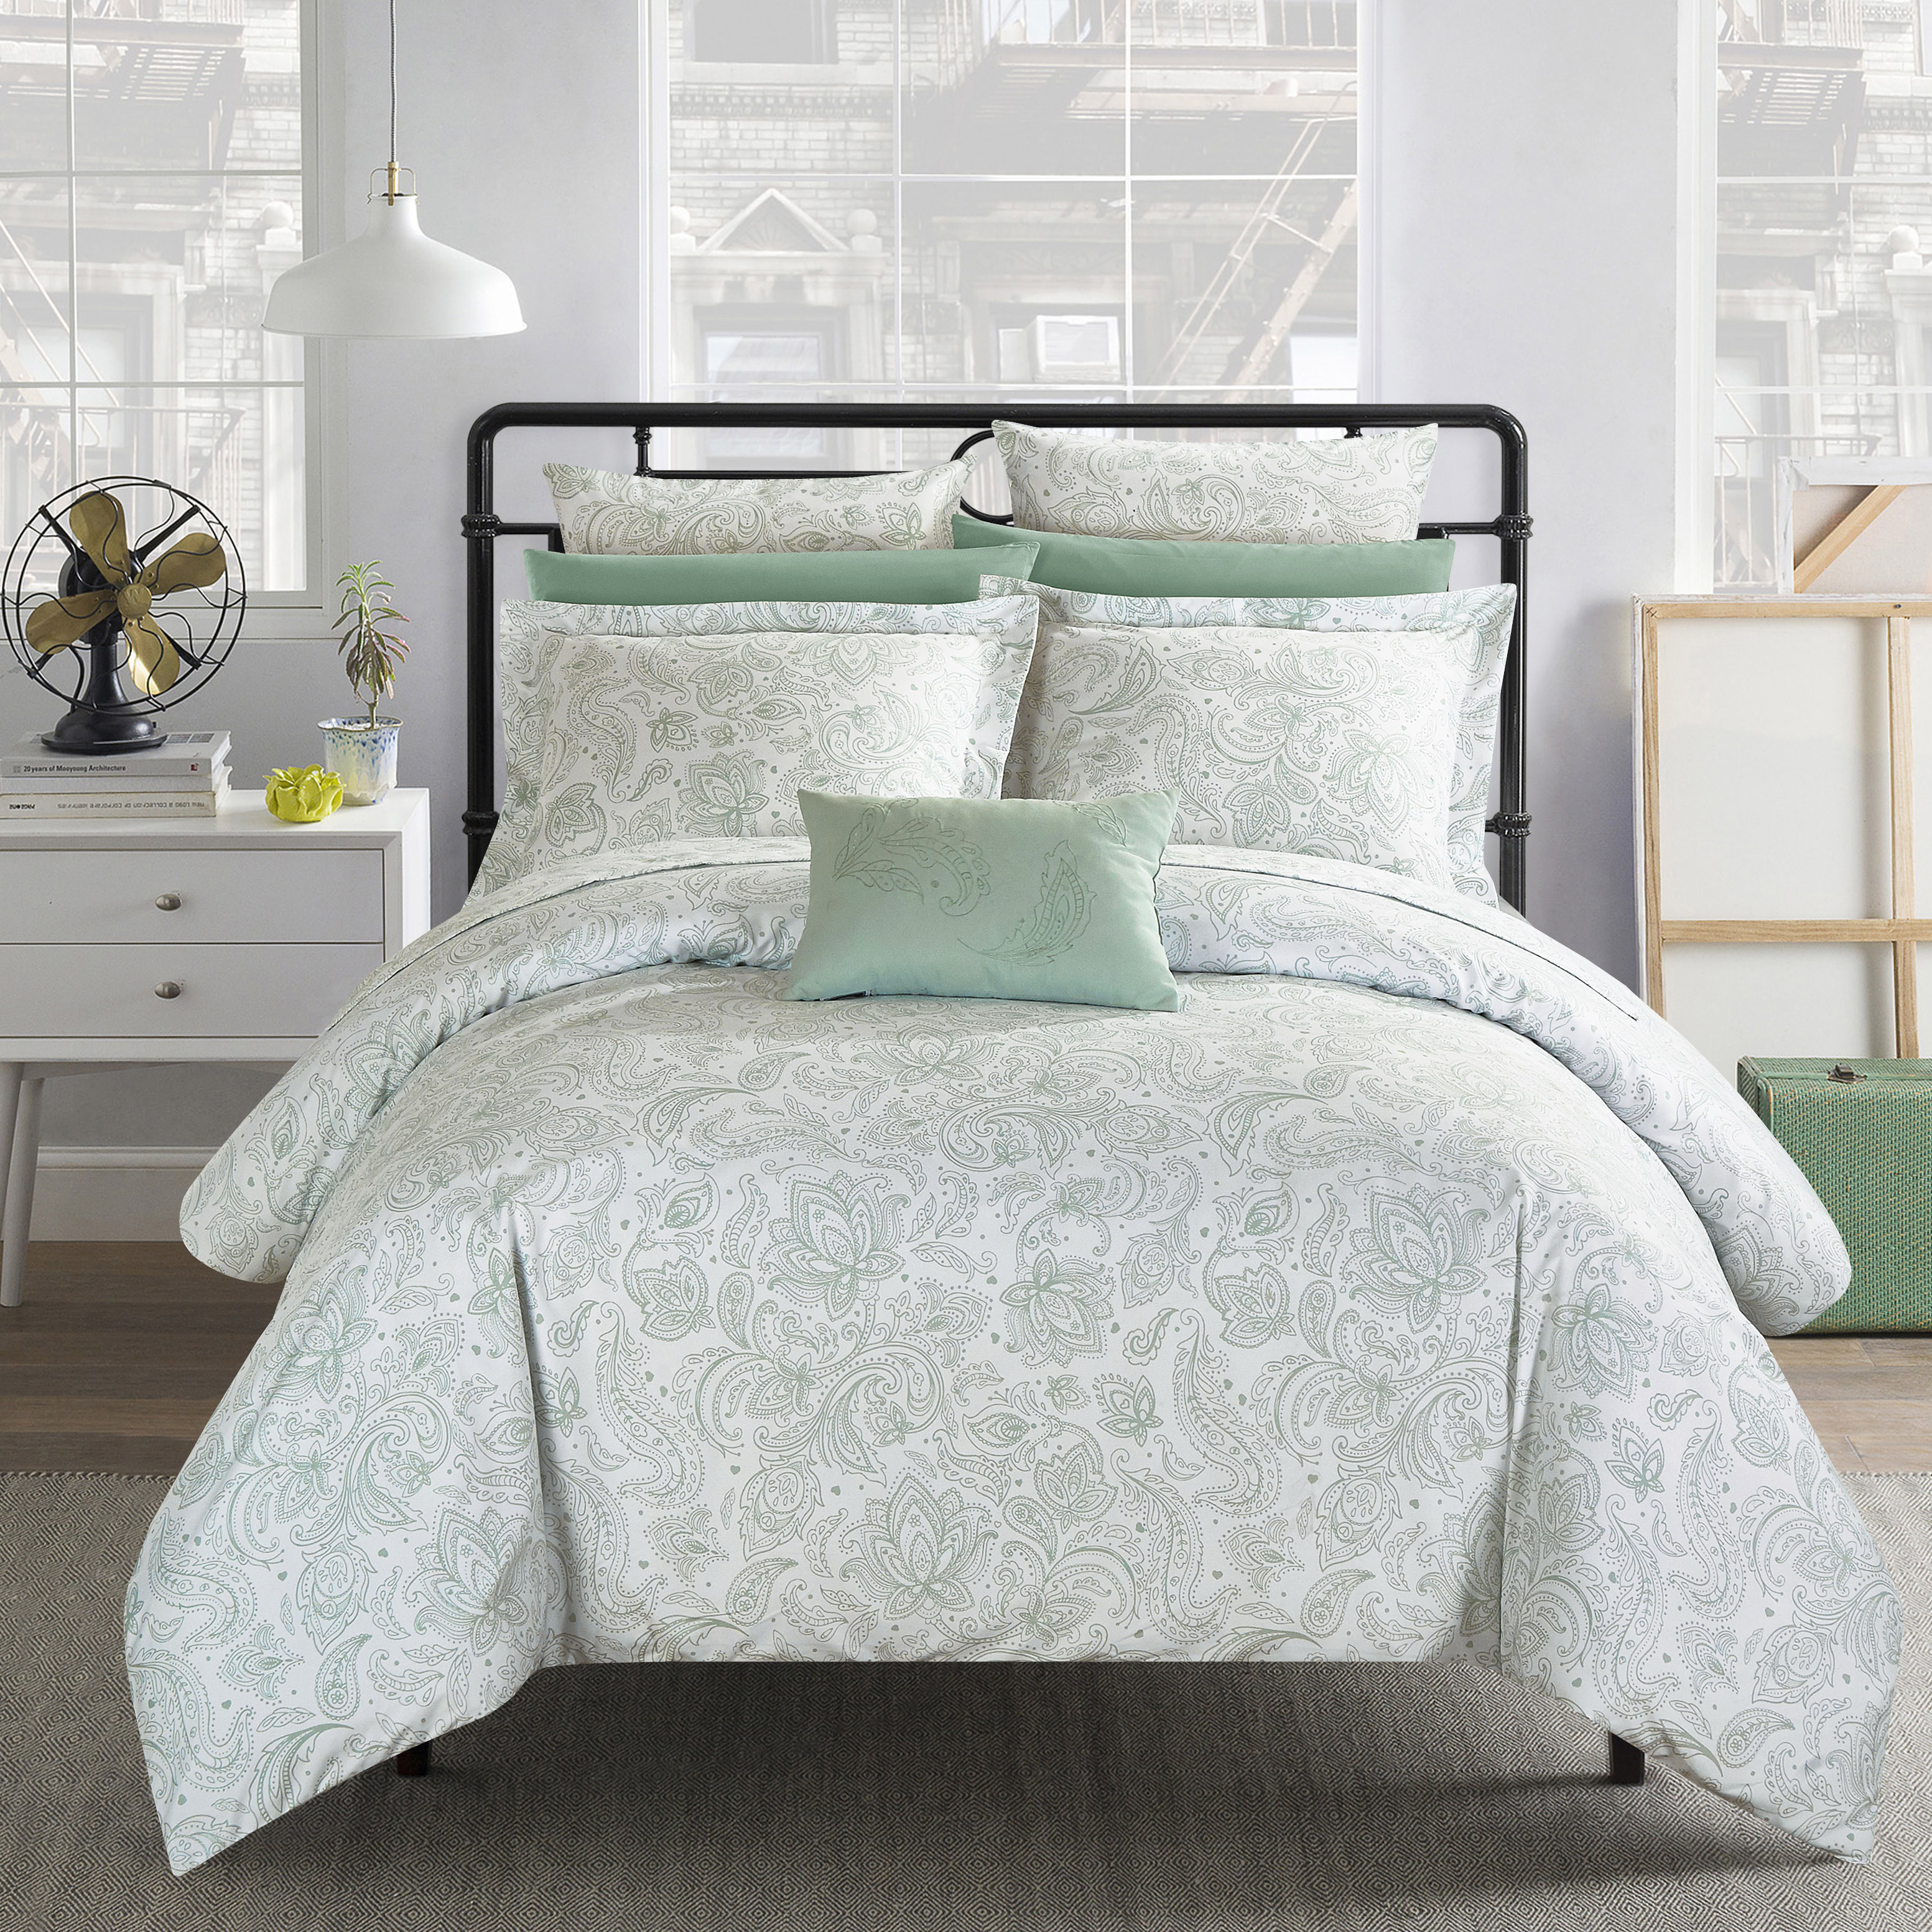 Chic Home 7-Piece Newark Park Super Soft Microfiber Vintage Paisley pattern Printed 2 tone Bed In a Bag Duvet Set Green with coordinating sheet and 2 bonus pillow cases.